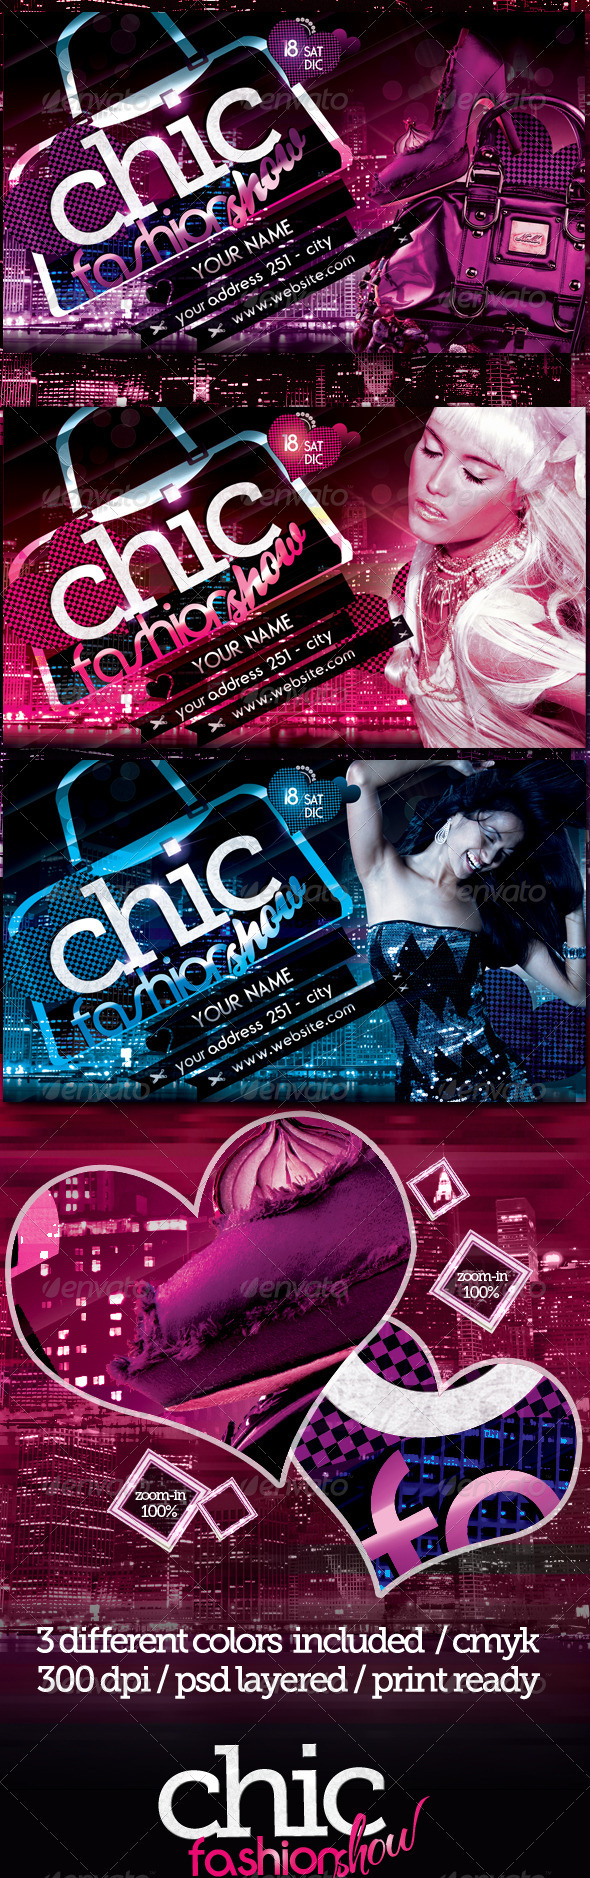 Graphic River Chic Fashion Show Flyer Template Print Templates -  Flyers  Events  Clubs & Parties 820479